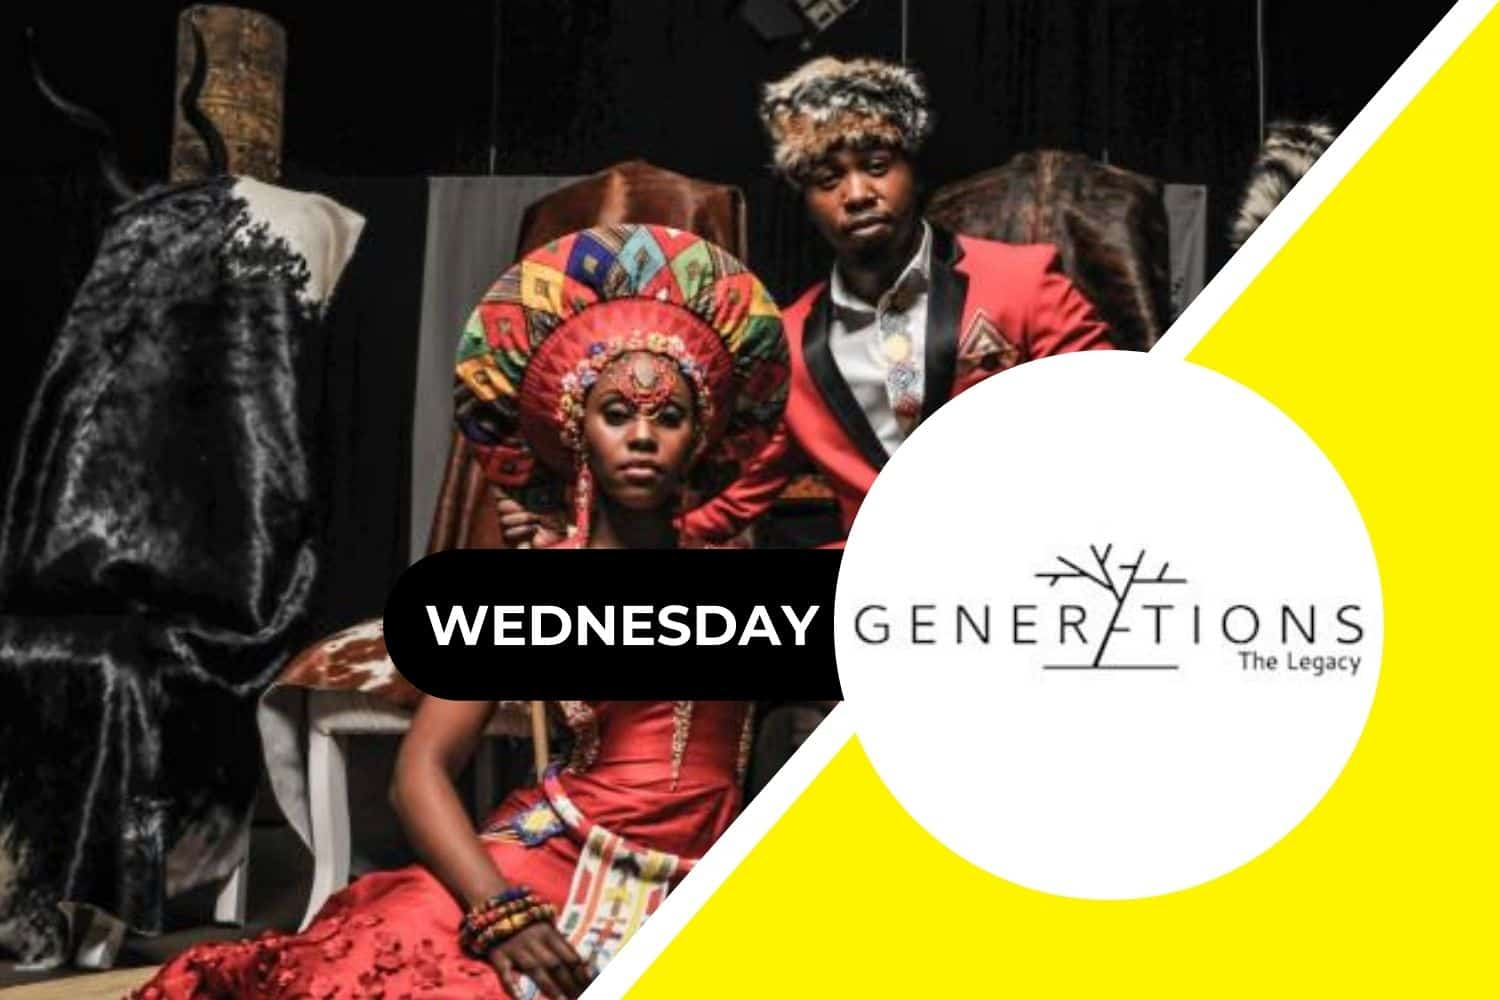 On today's episode of Generations 6 October, Wednesday